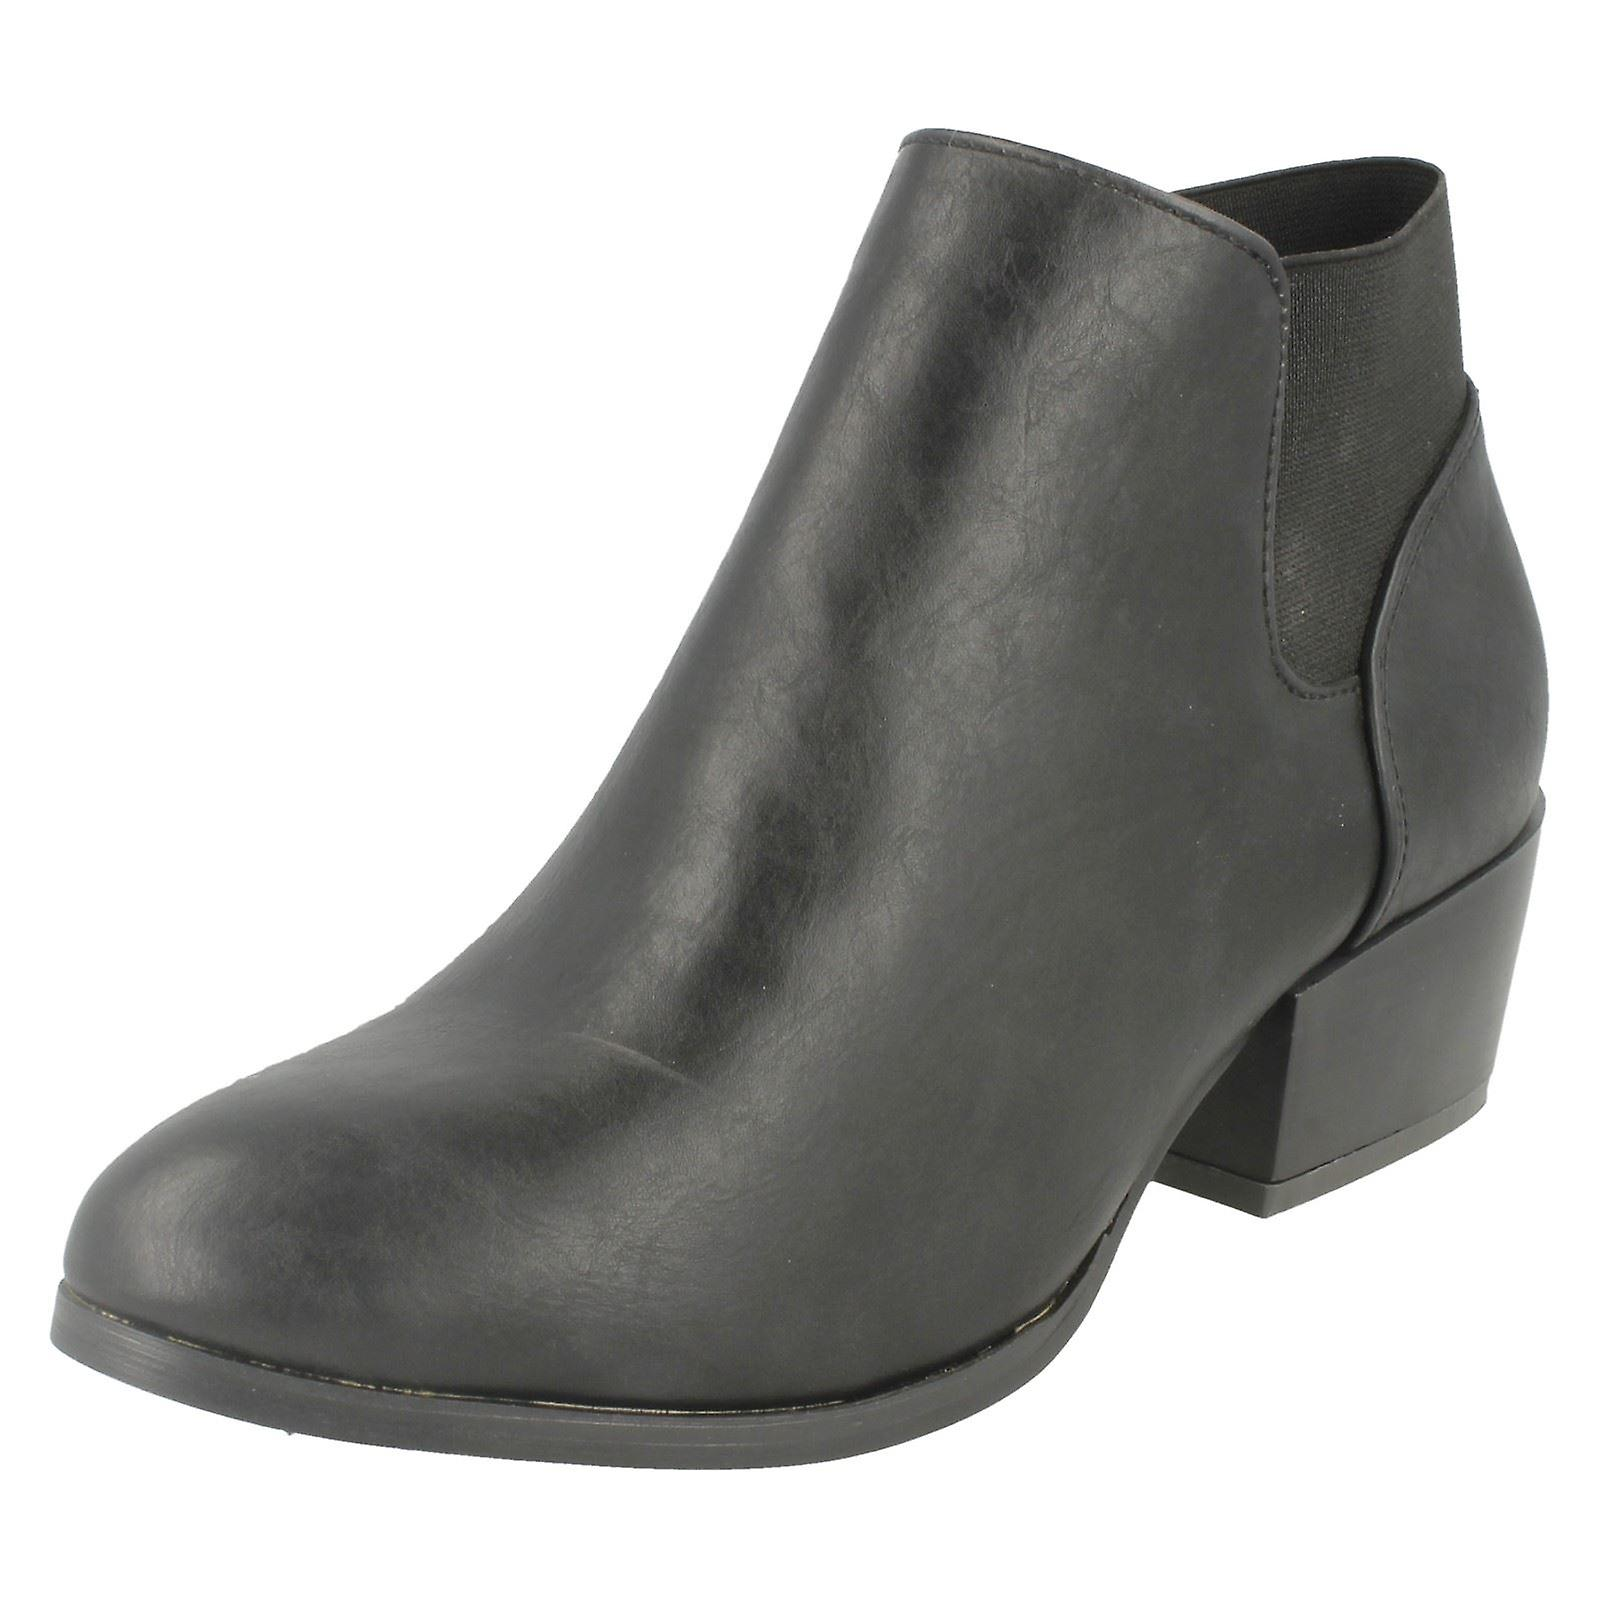 Boot Spot On Ladies Ankle F50230 Heeled wH1ZPI